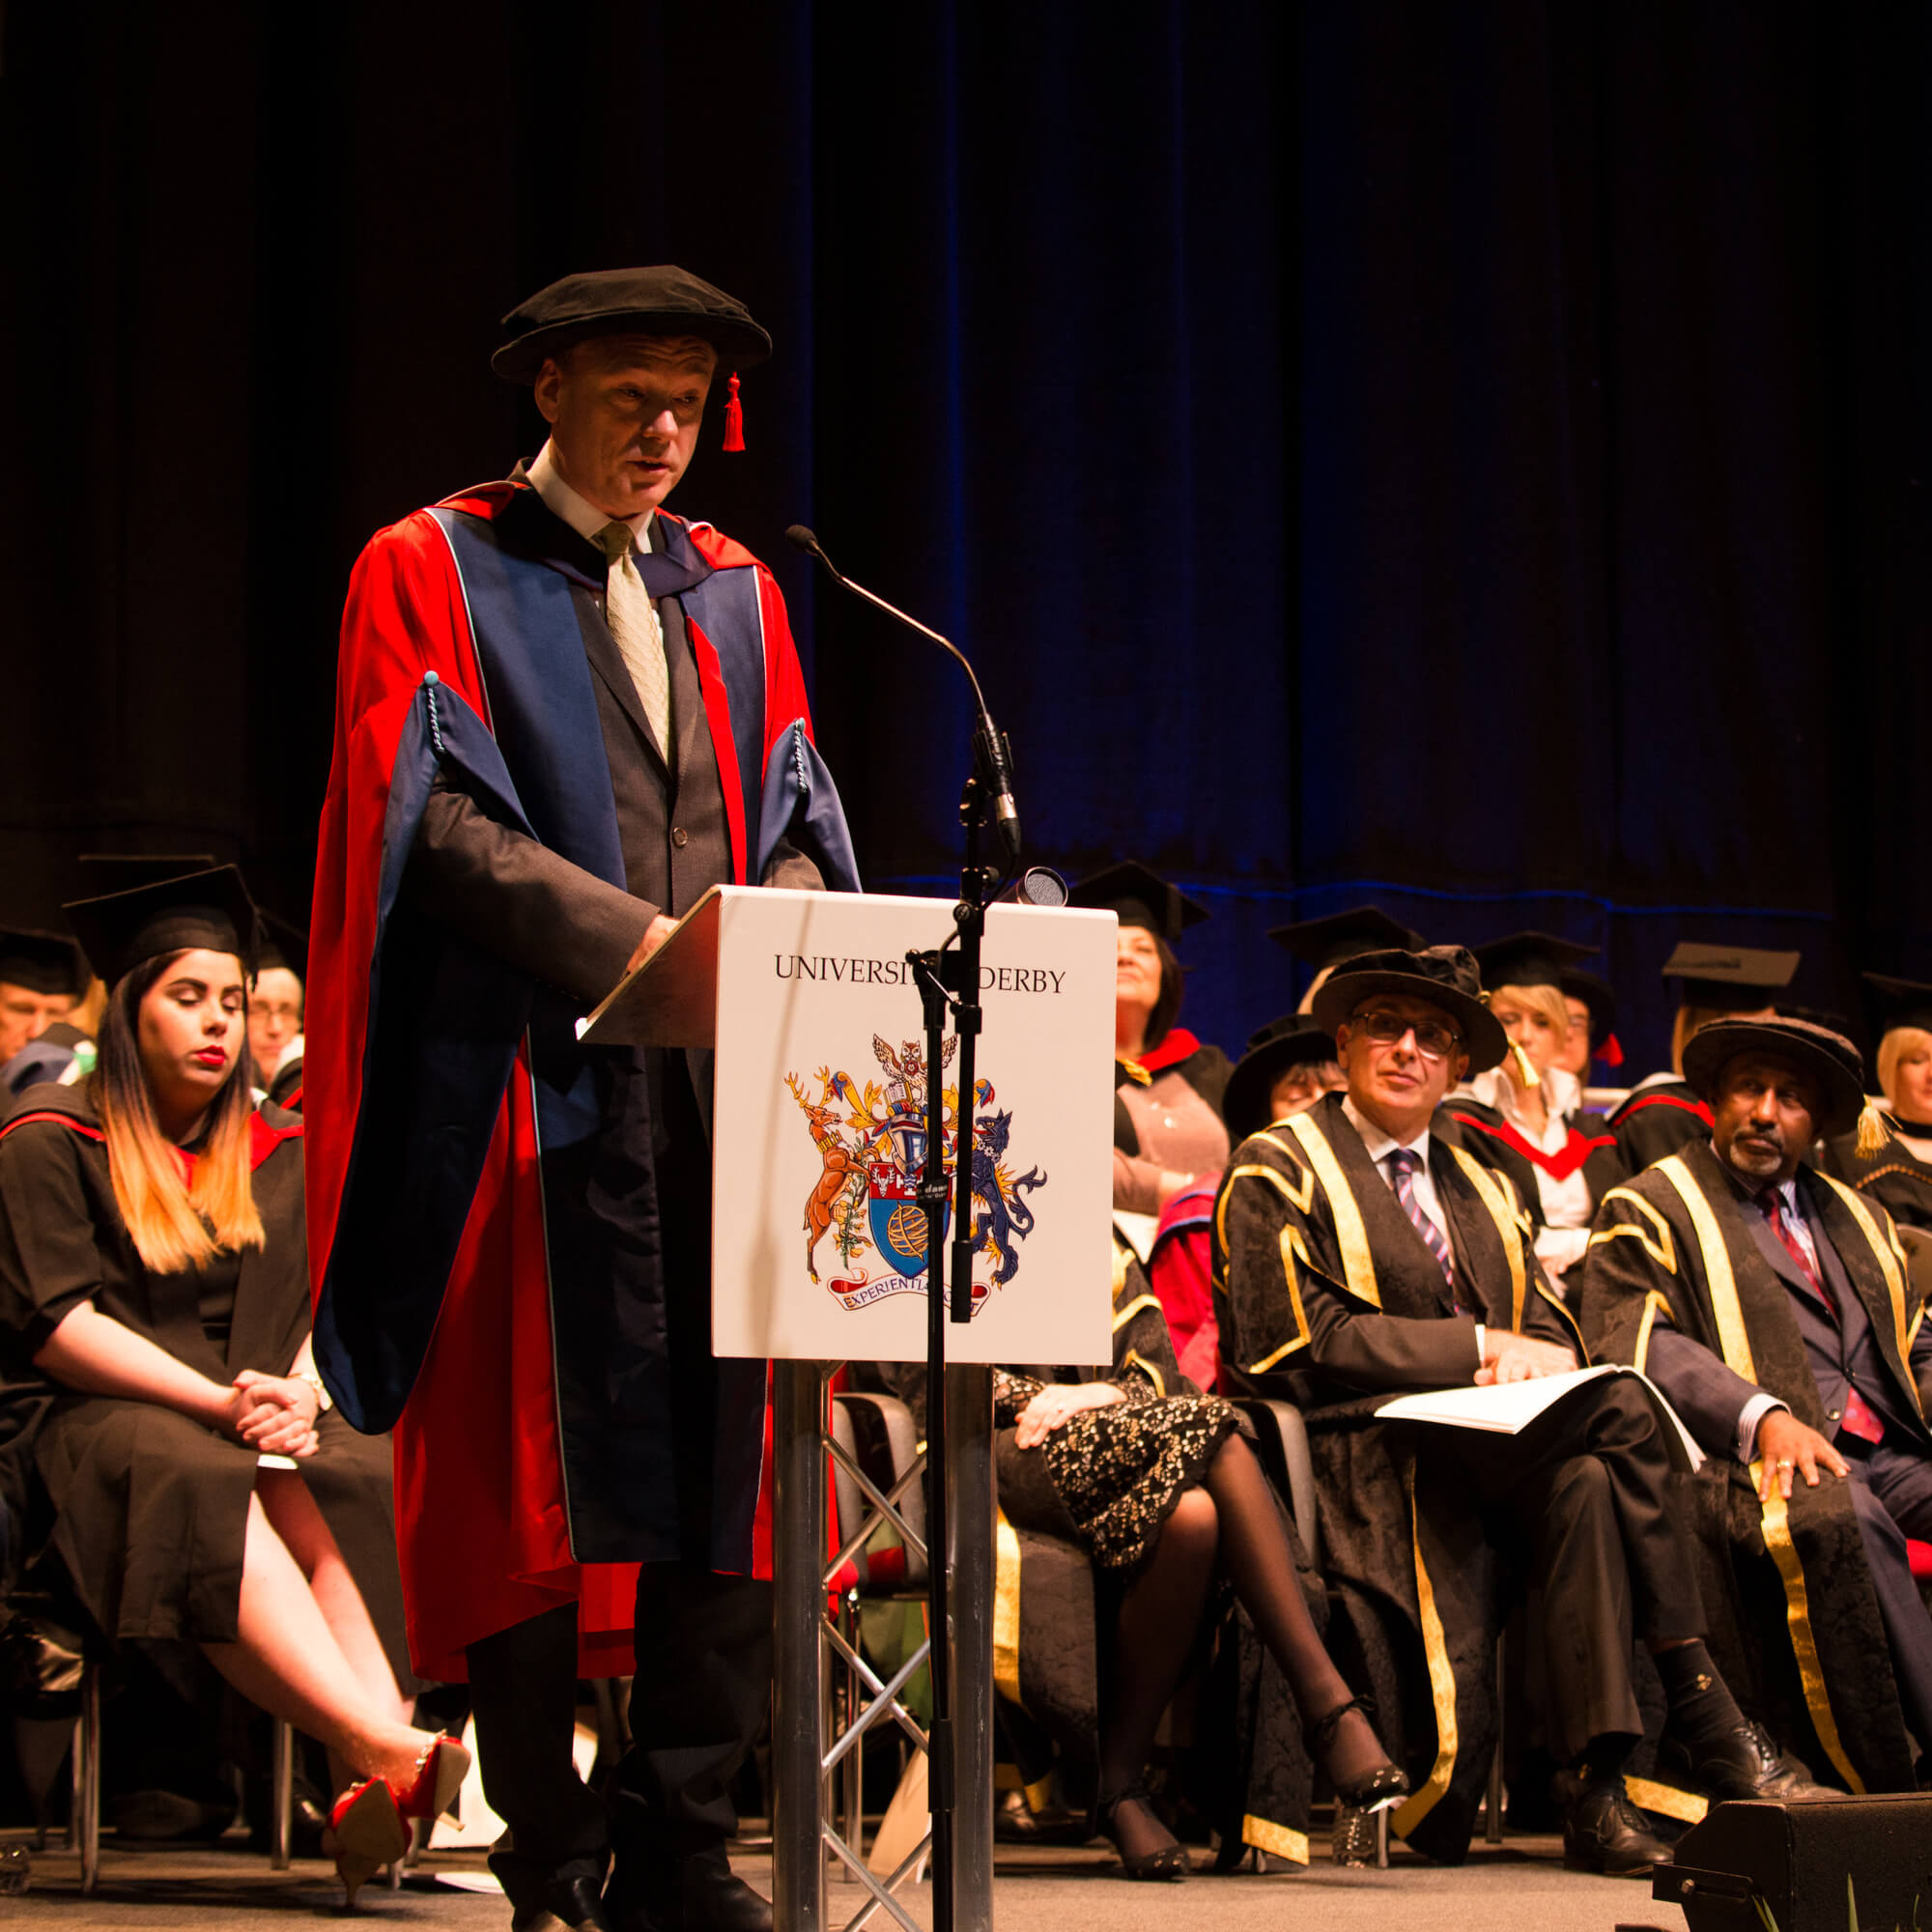 Honorand speaking at University of Derby winter graduation 2018